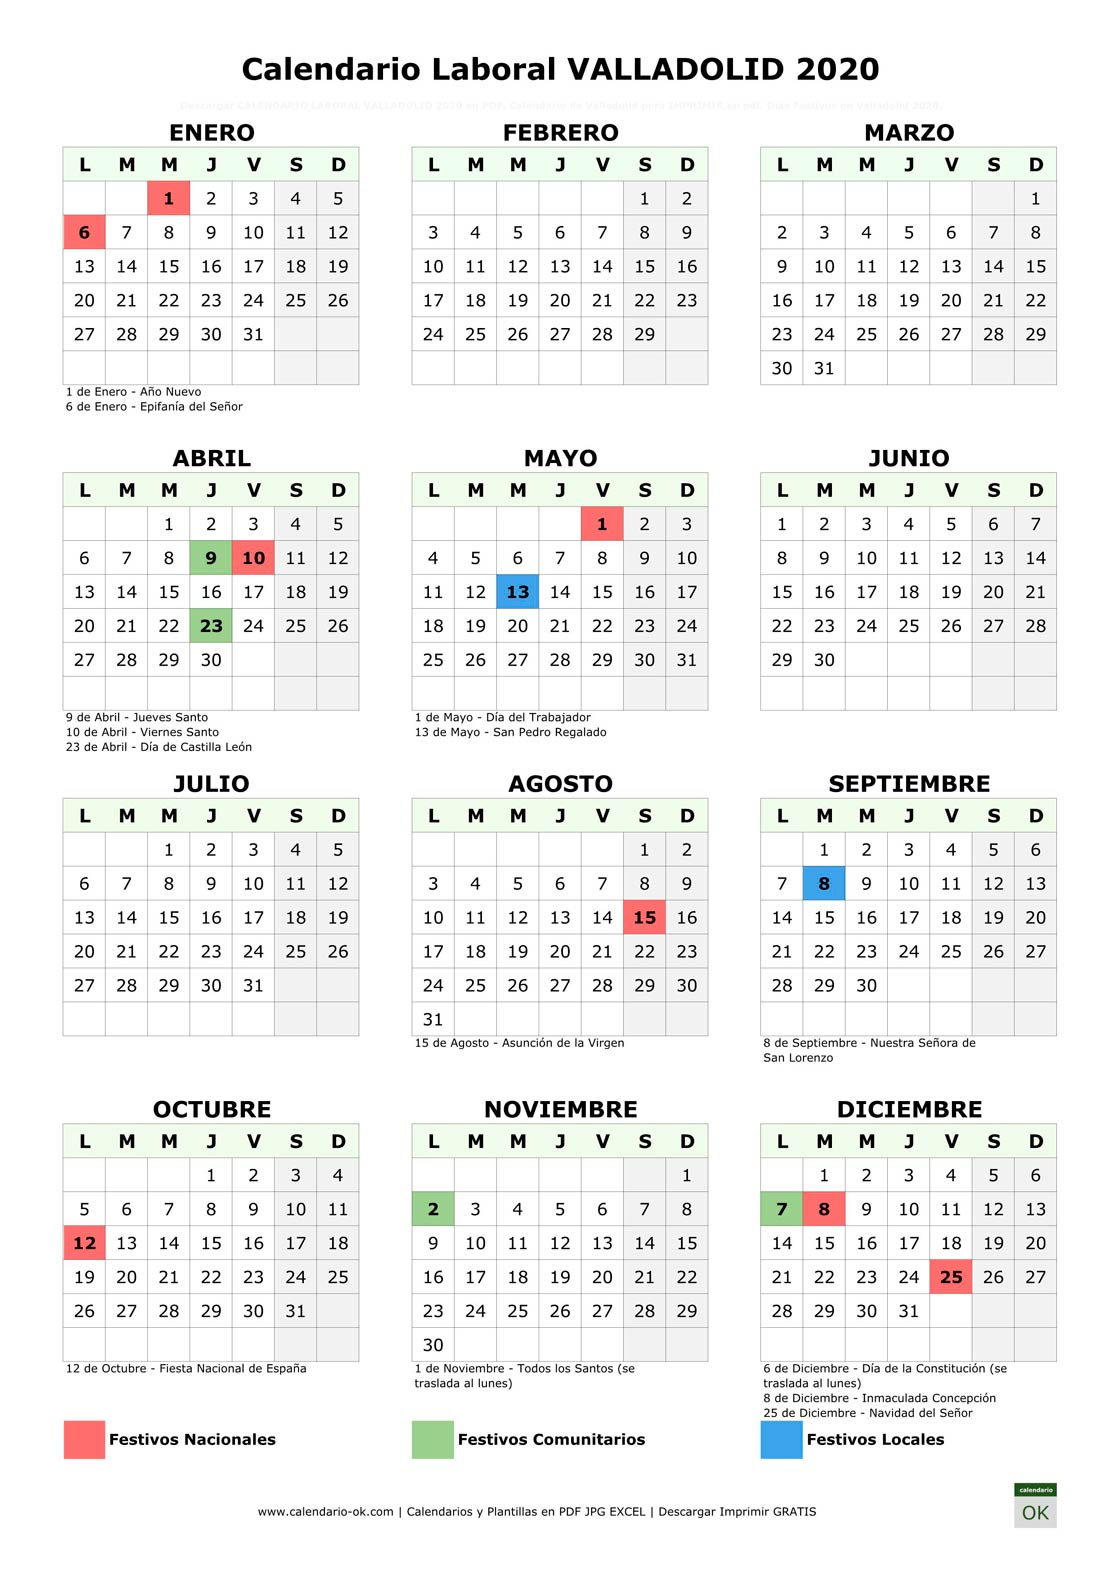 Calendario Laboral VALLADOLID 2020